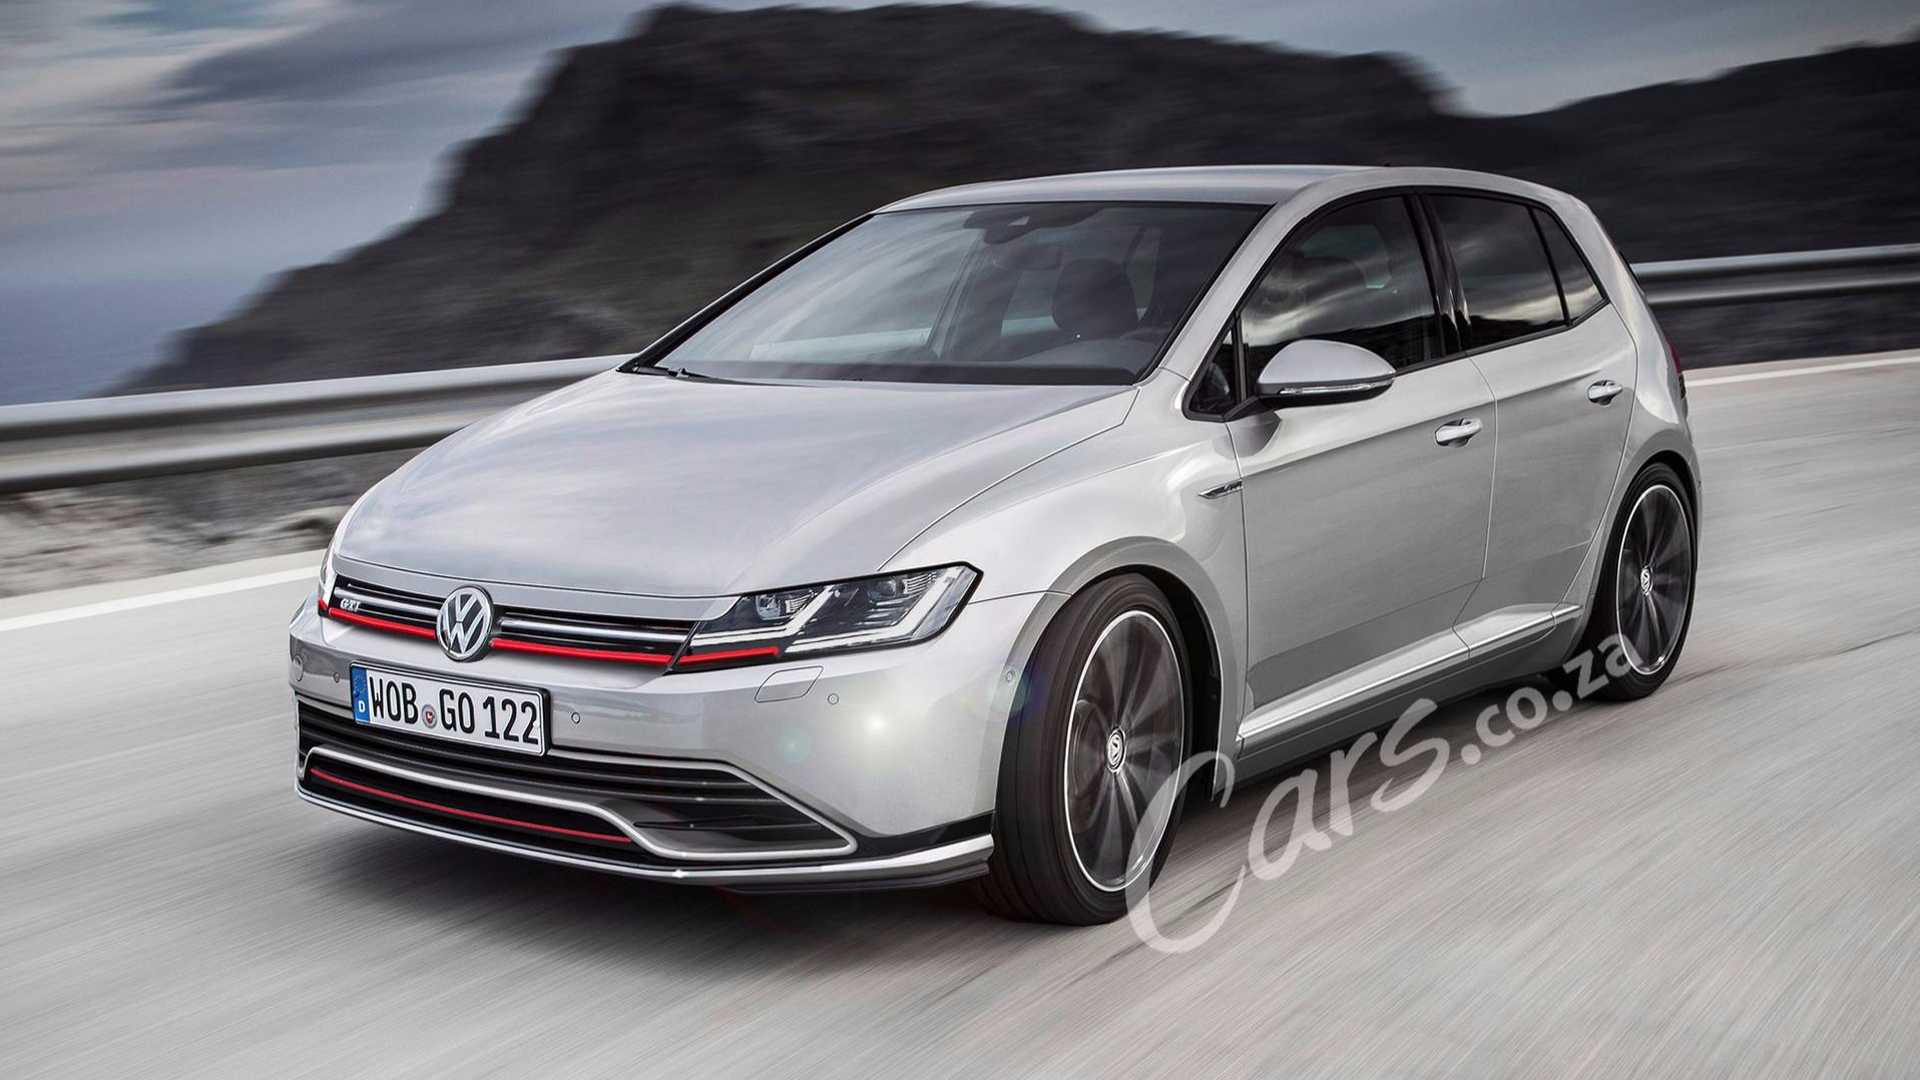 22 The Best Volkswagen Golf R 2020 Release Date And Concept